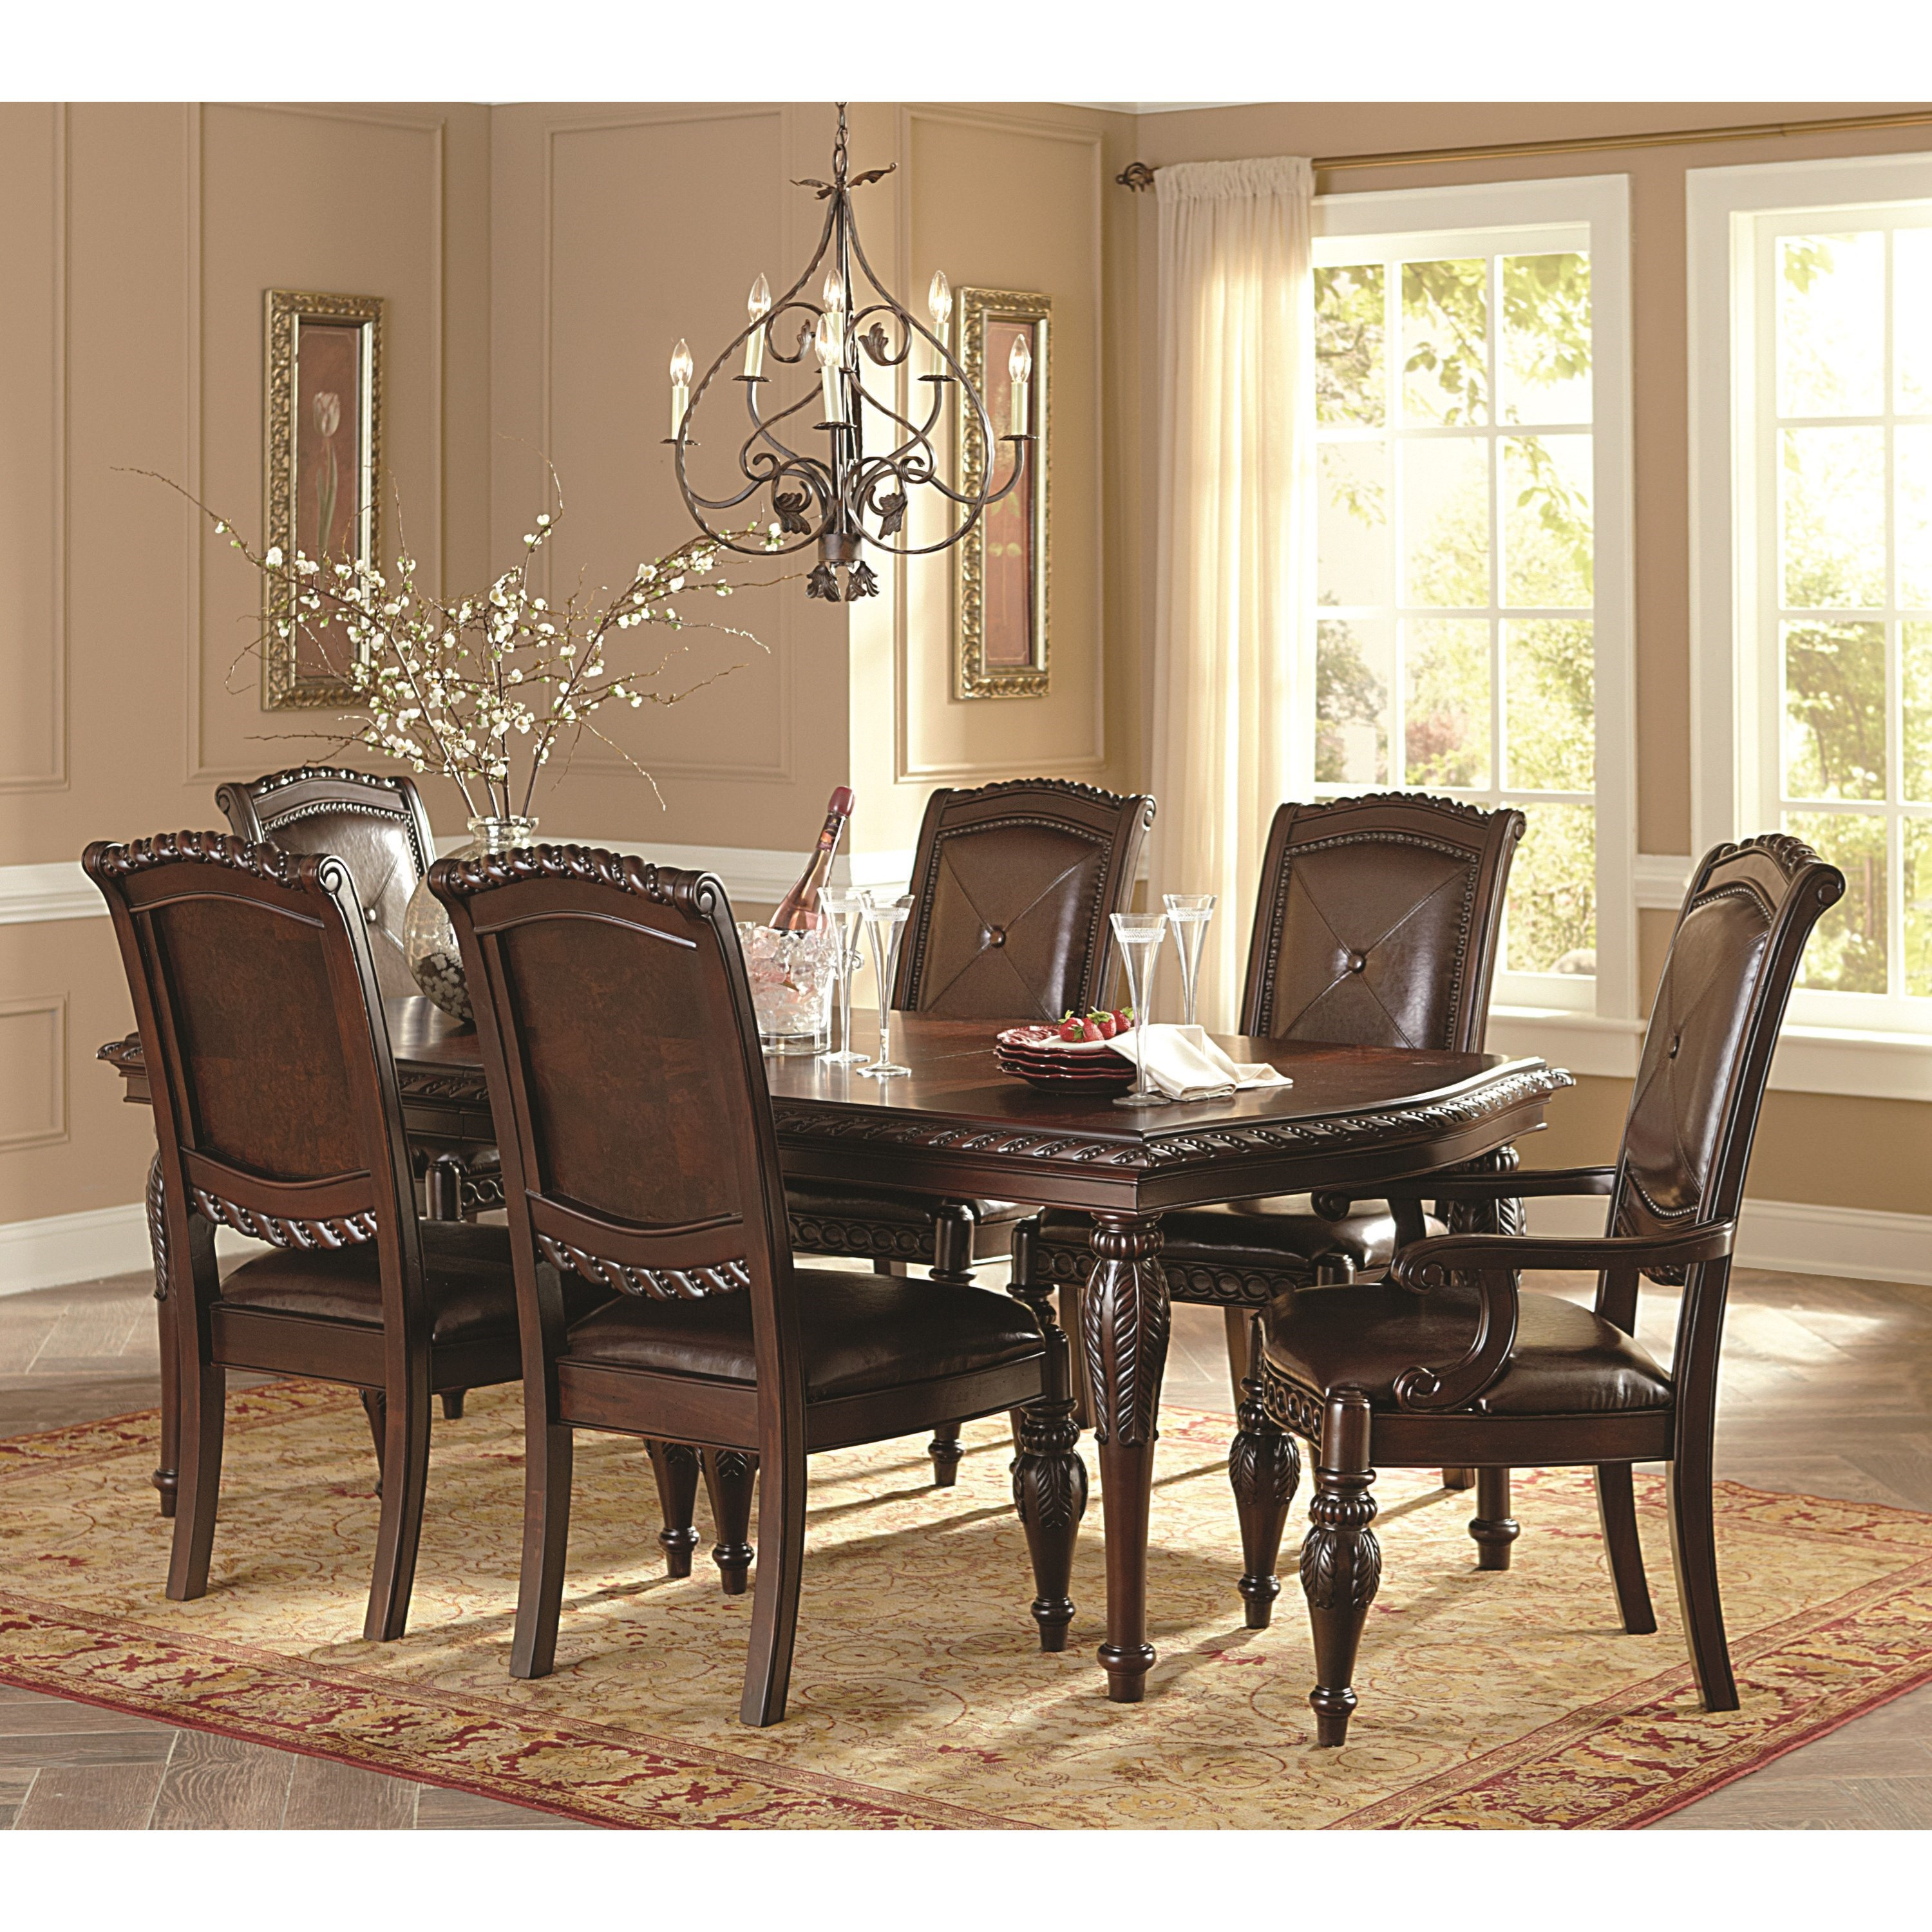 Antoinette 7-Piece Dining Table & Chair Set by Steve Silver at Walker's Furniture